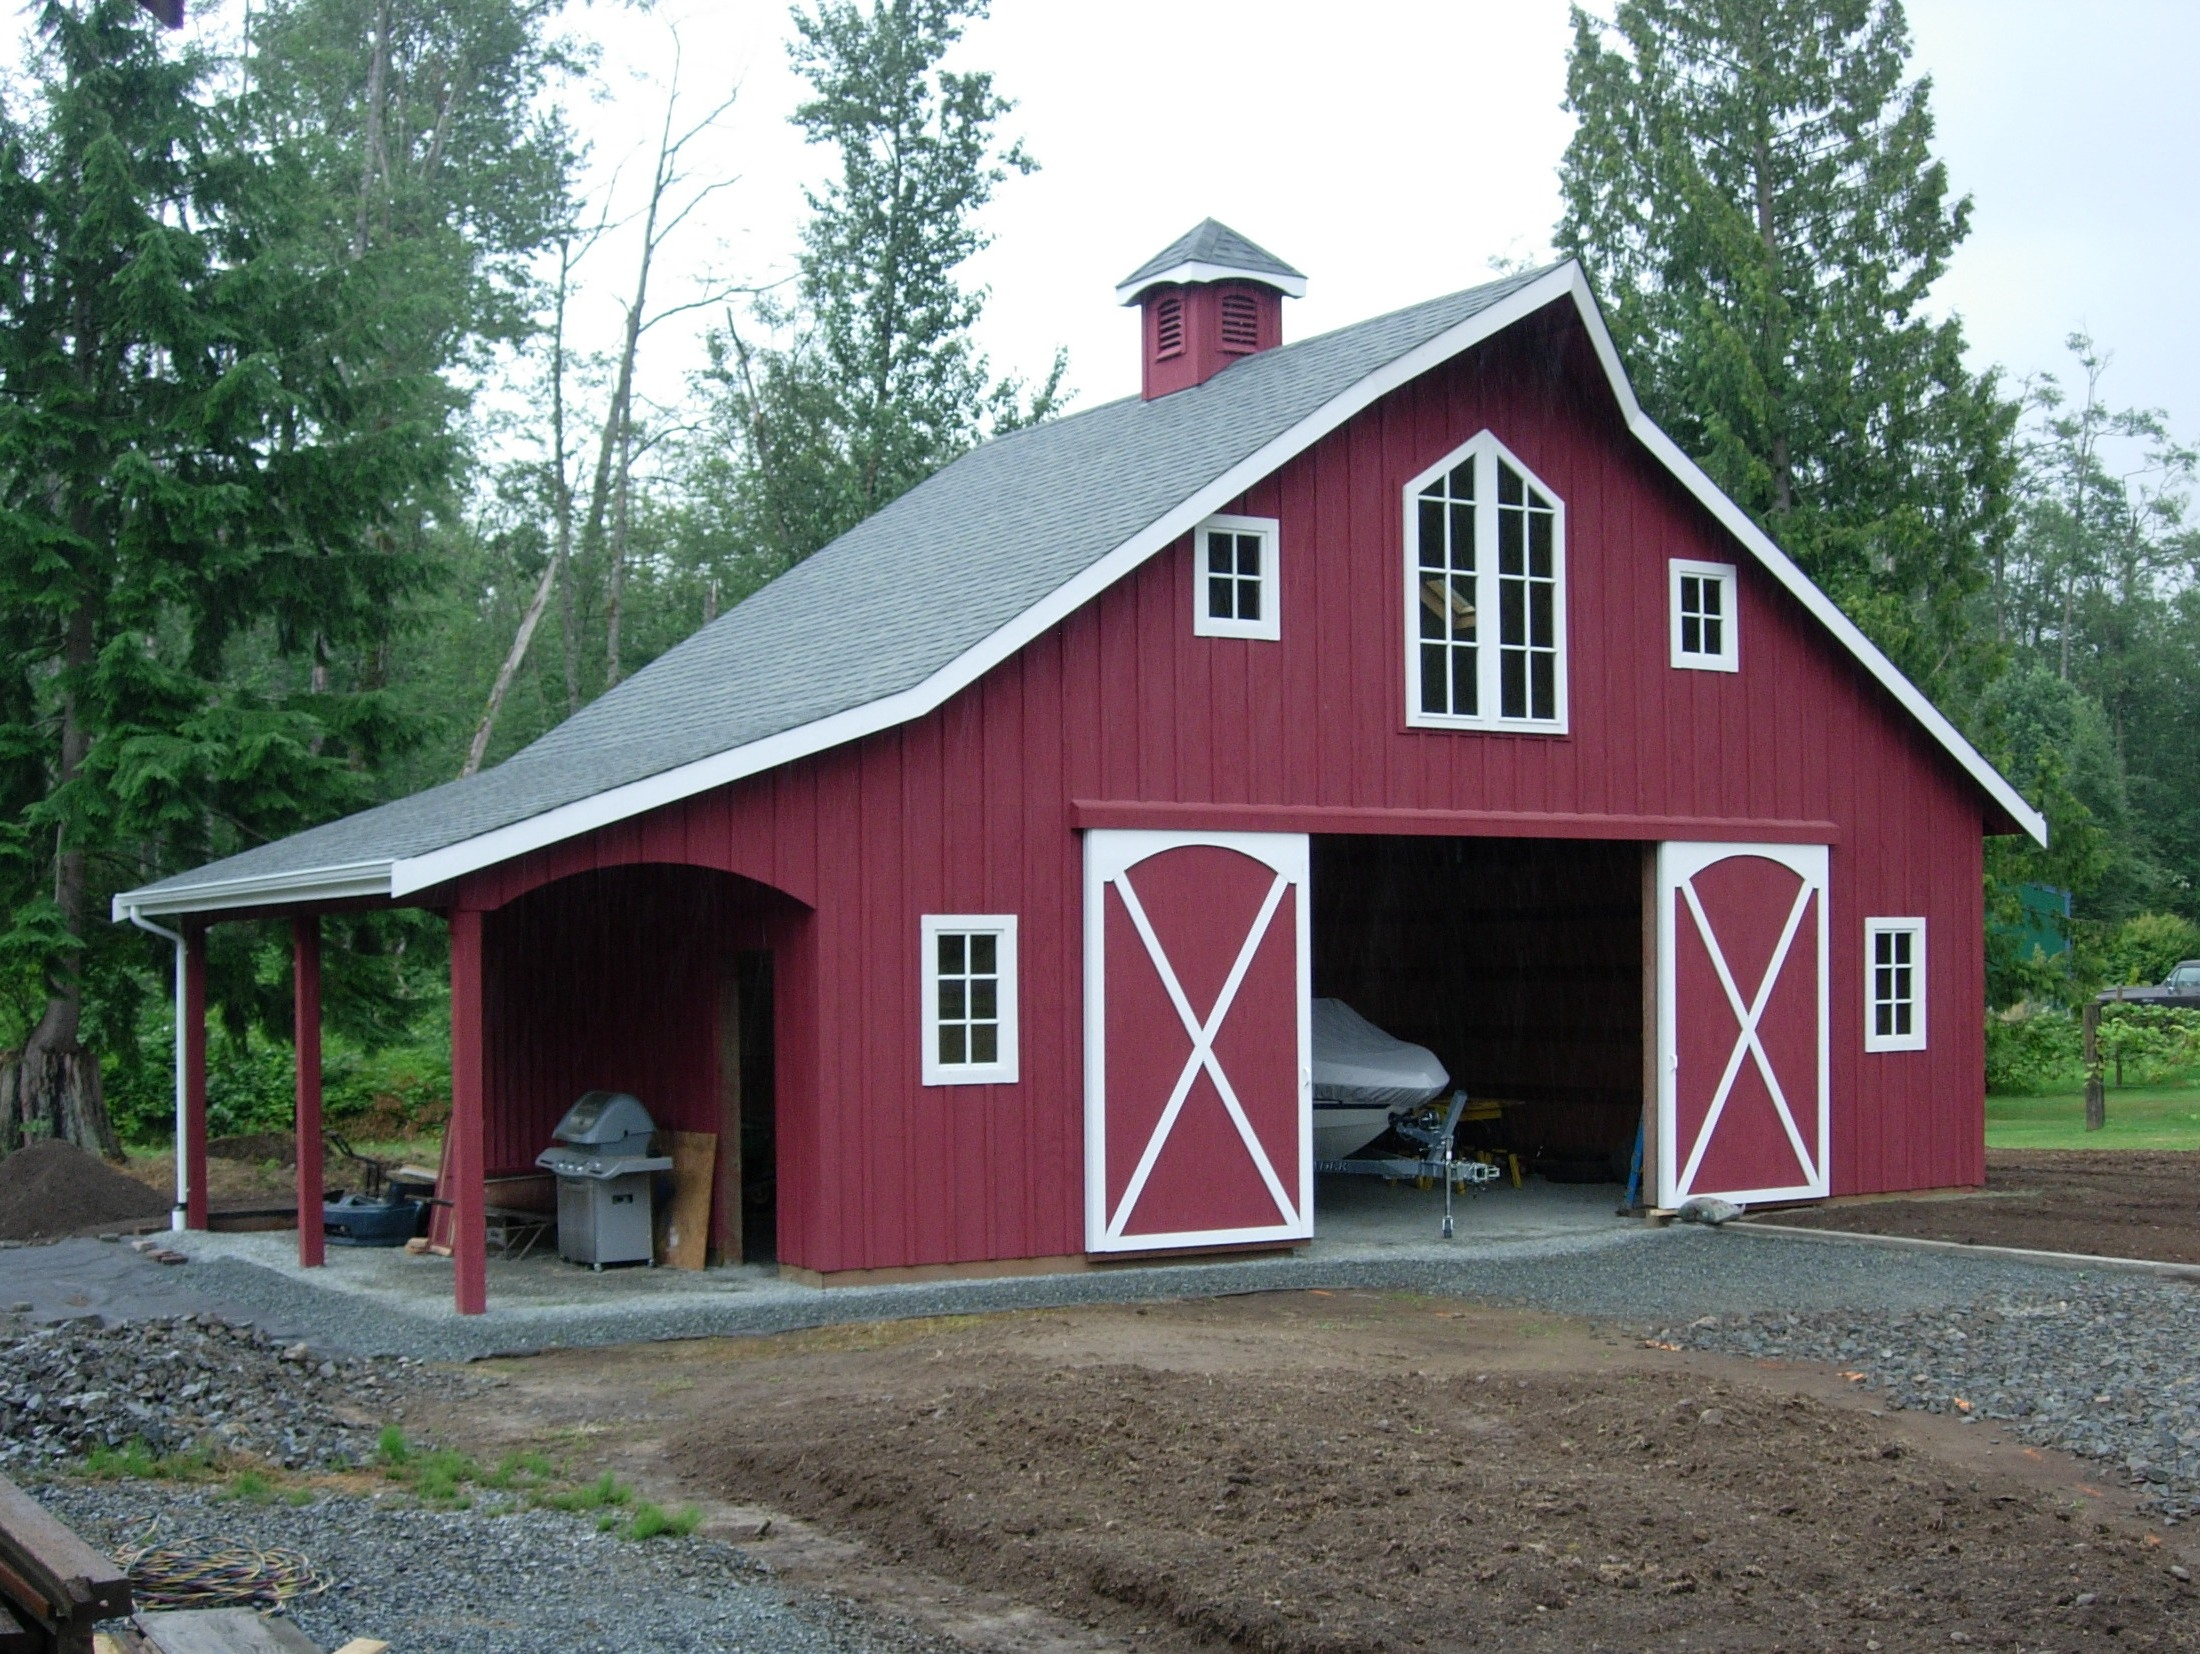 13 Best Three Car Garages For Sale Images On Pinterest: Small Horse Barn Plans 2 Stall Horse Barn Plans, Shed